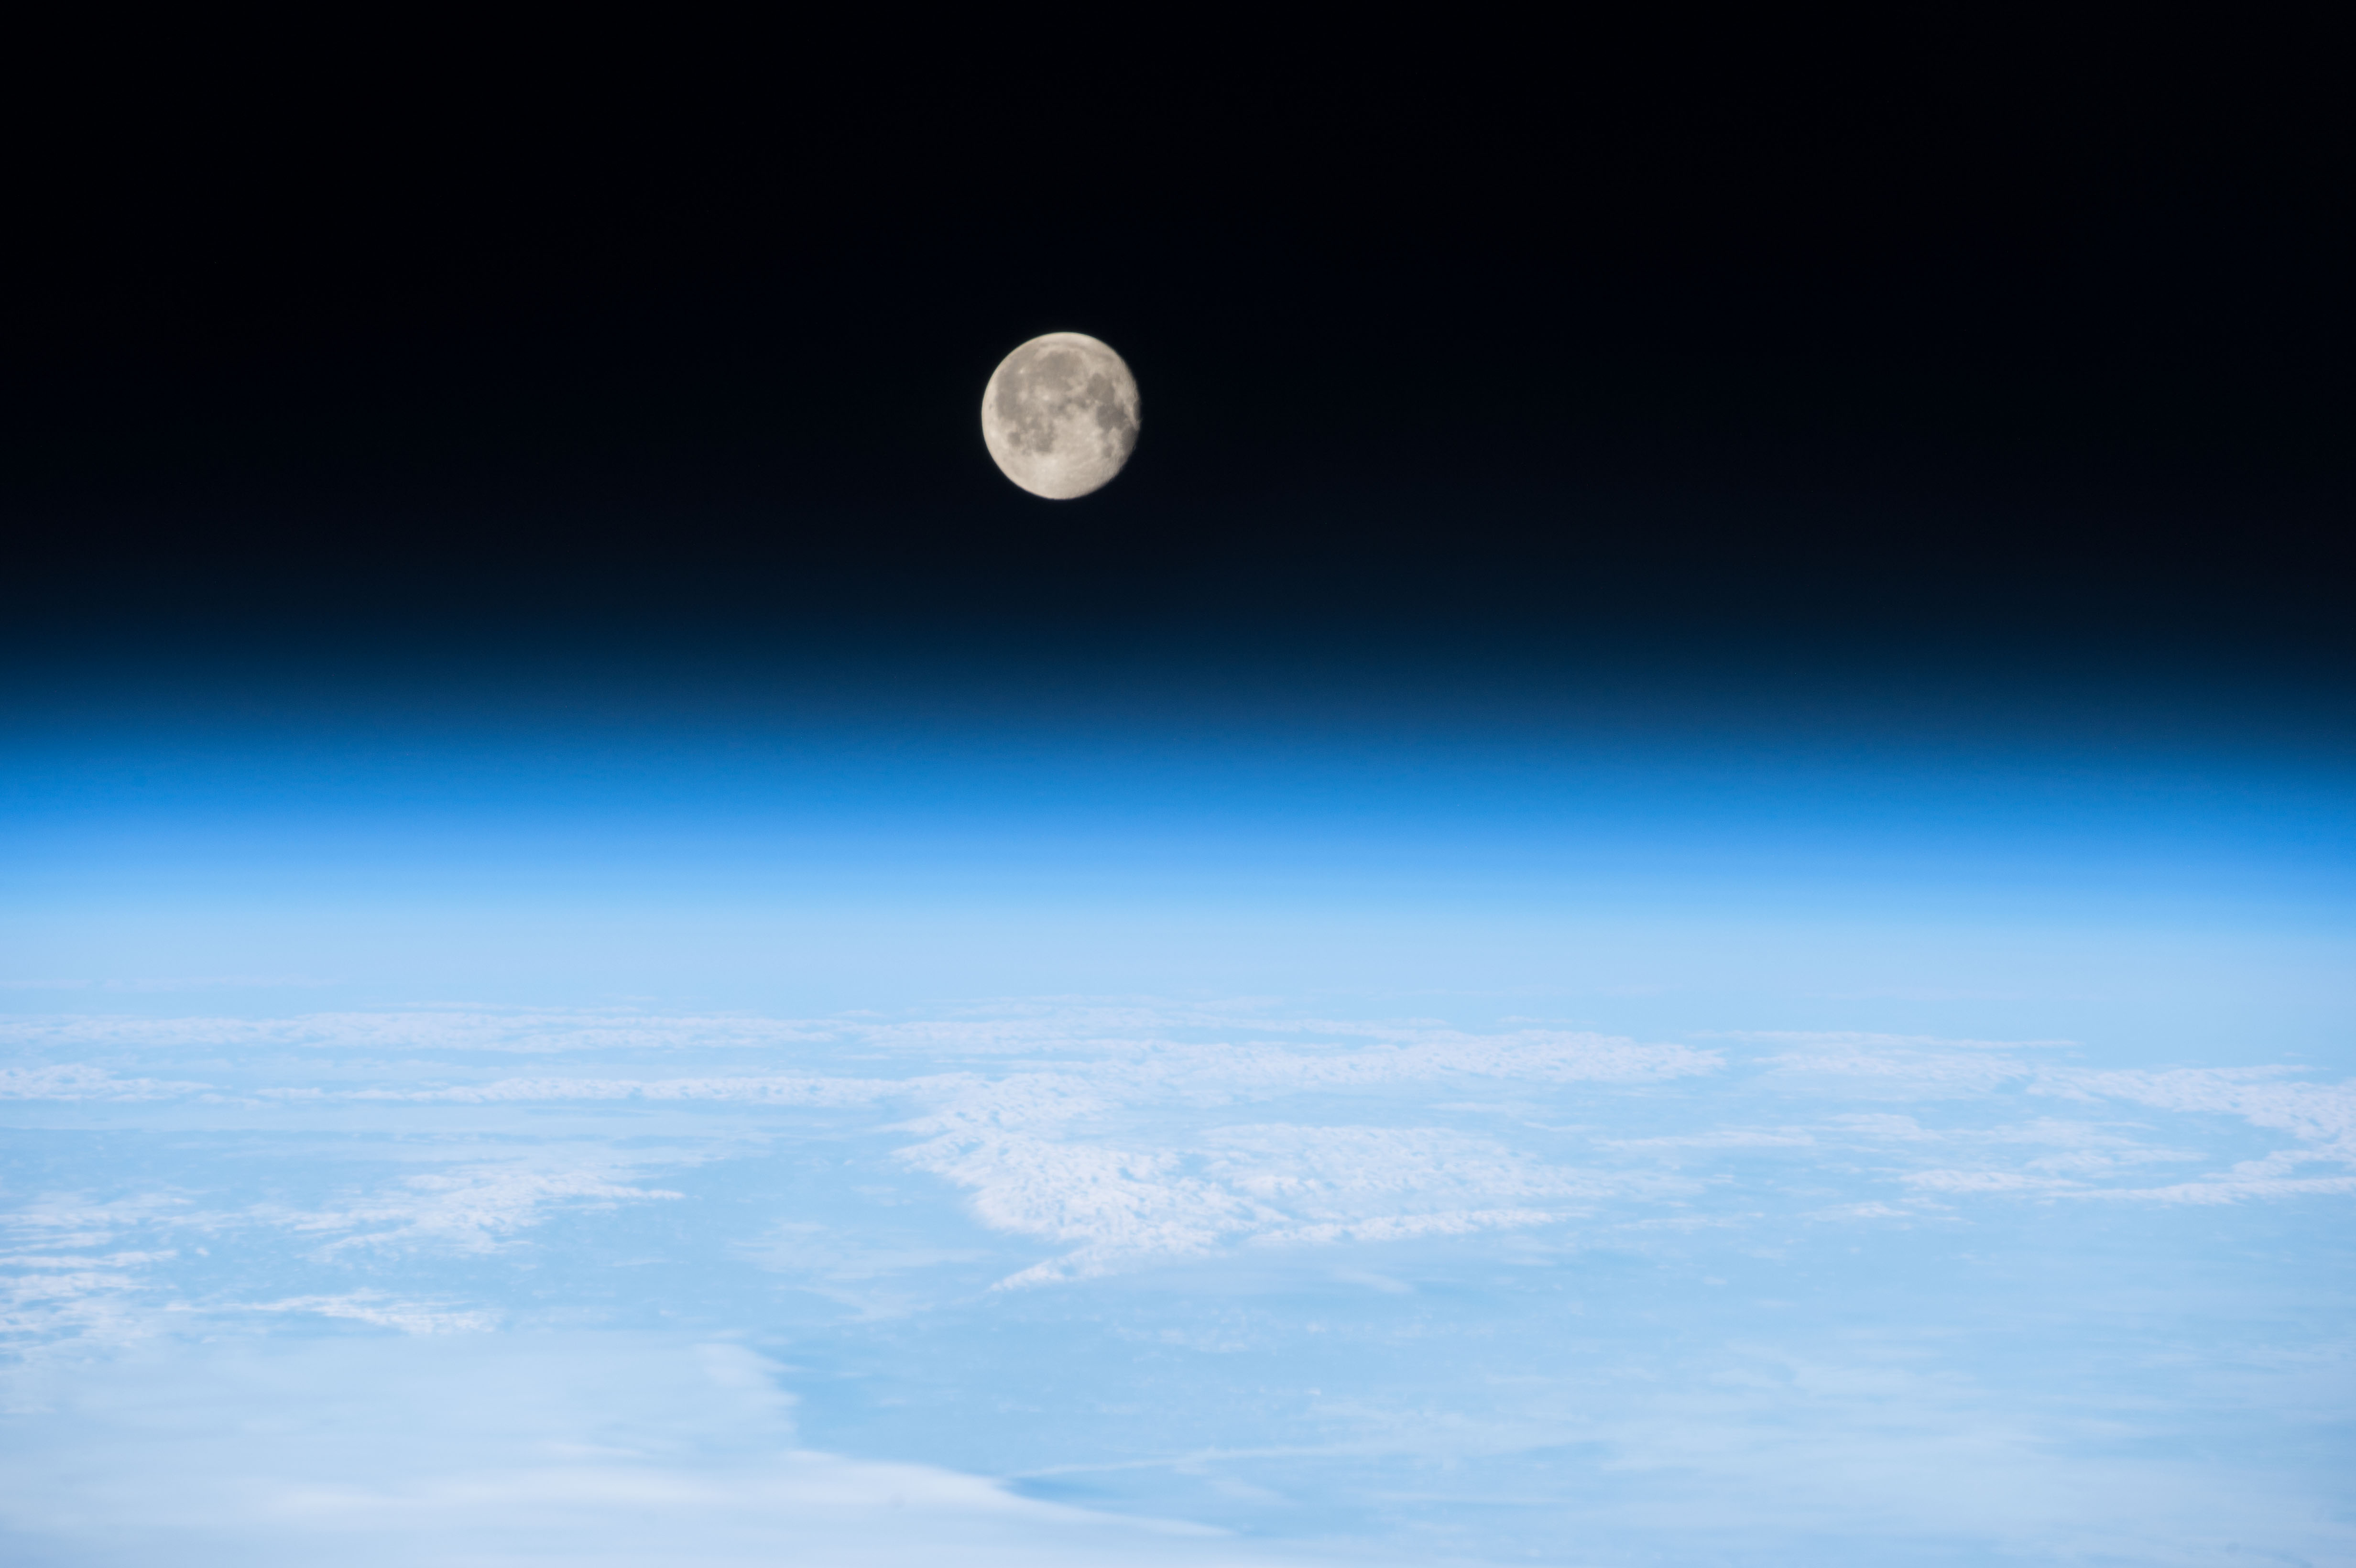 earth s atmosphere and interior Earth's atmosphere is a layer of gases surrounding the planet earth and retained by the  2017 — seawater cycles throughout earth's interior down to 2.